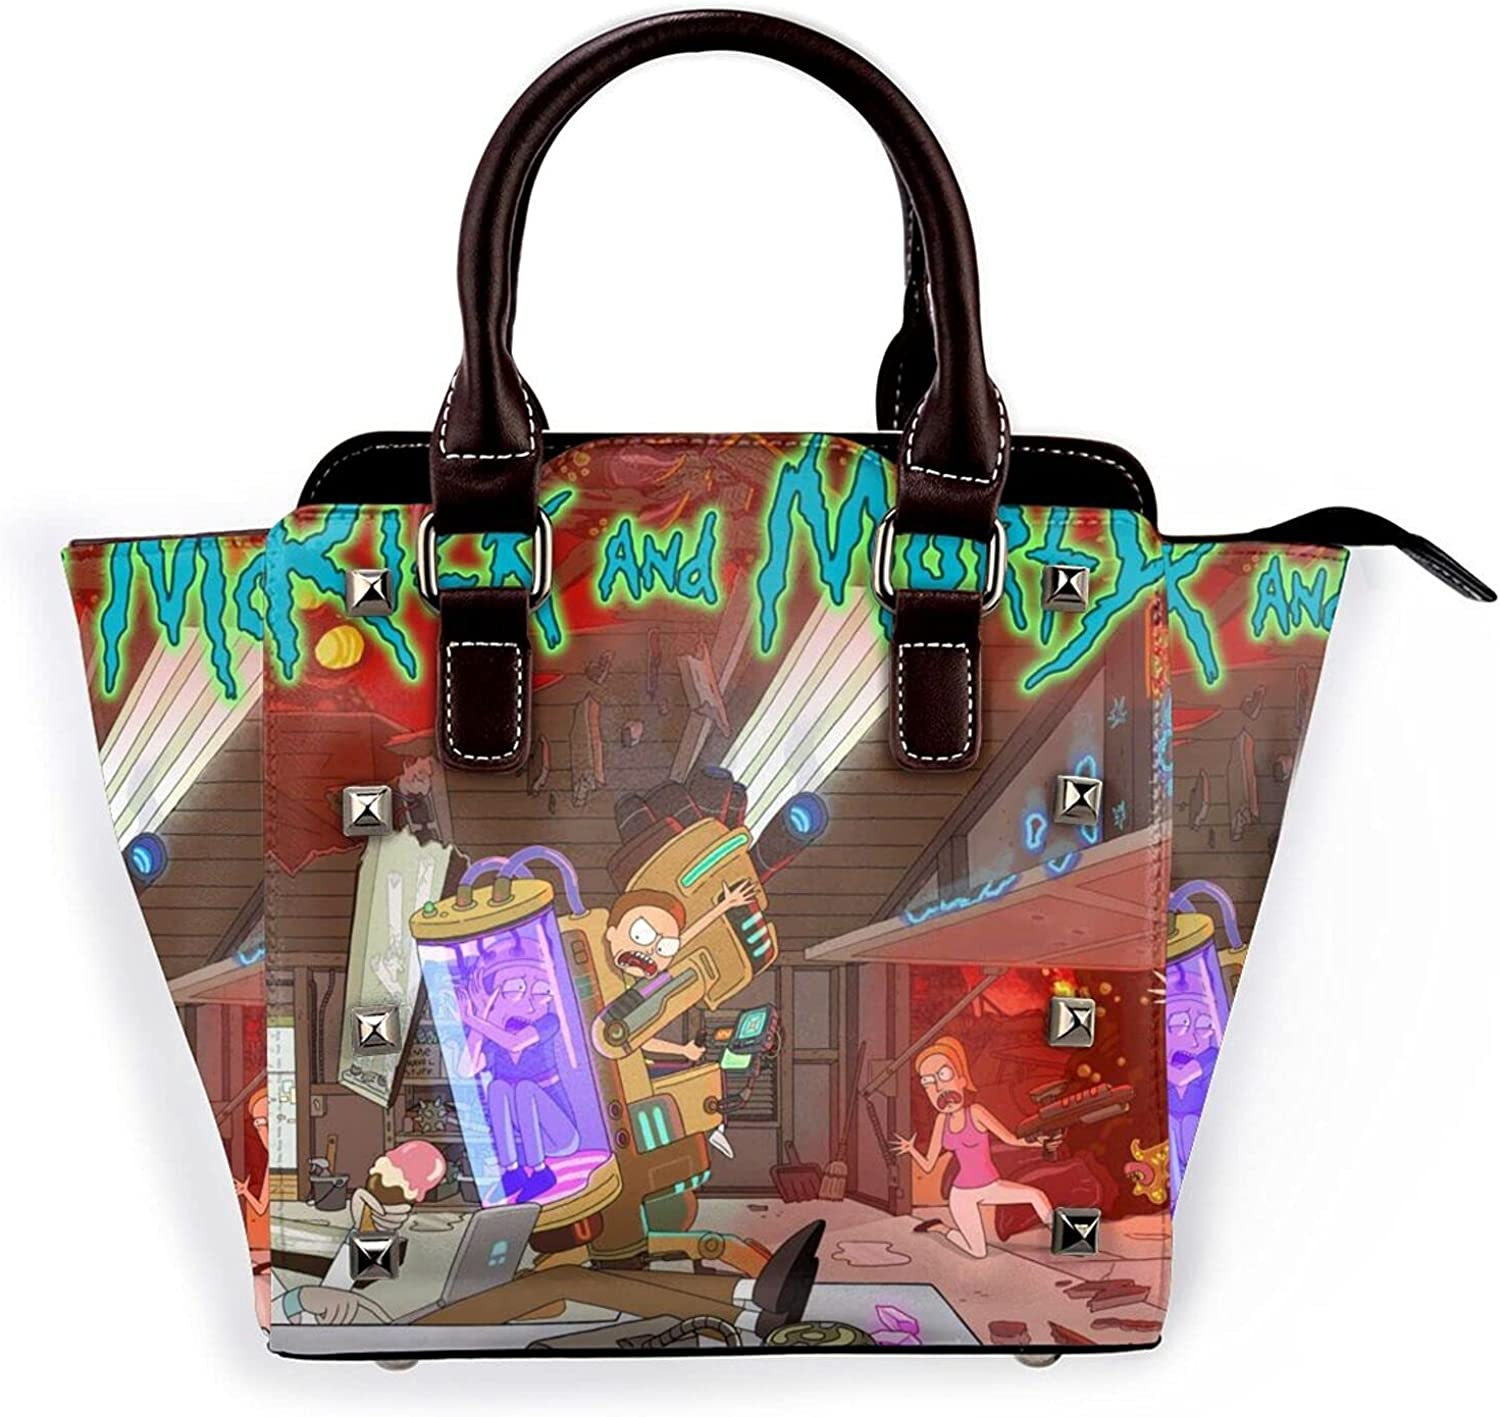 Rick Special sale item And Morty Womens Leather Rivet Tote Seattle Mall Bag C Handbags Shoulder